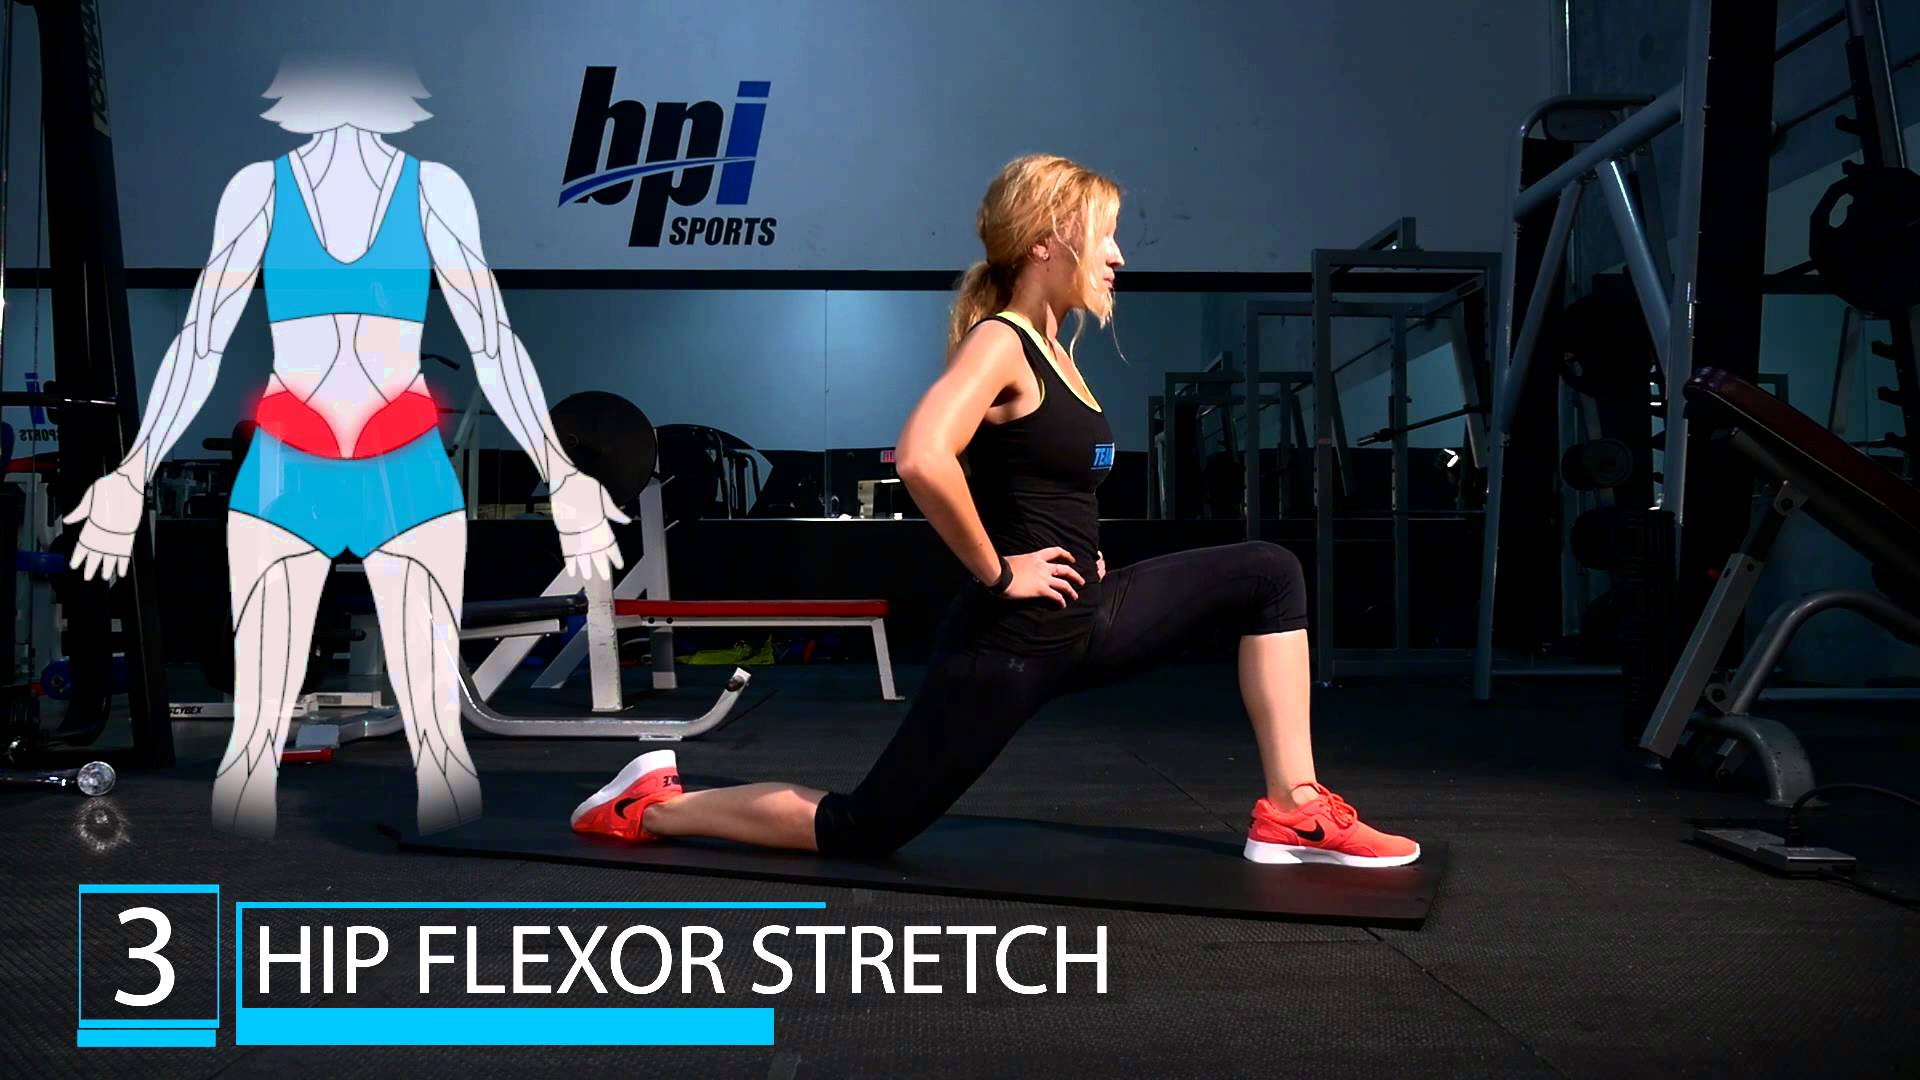 7-Stretching-Exercises-for-Recovery-Best-Training-Tips-BPI-Sports